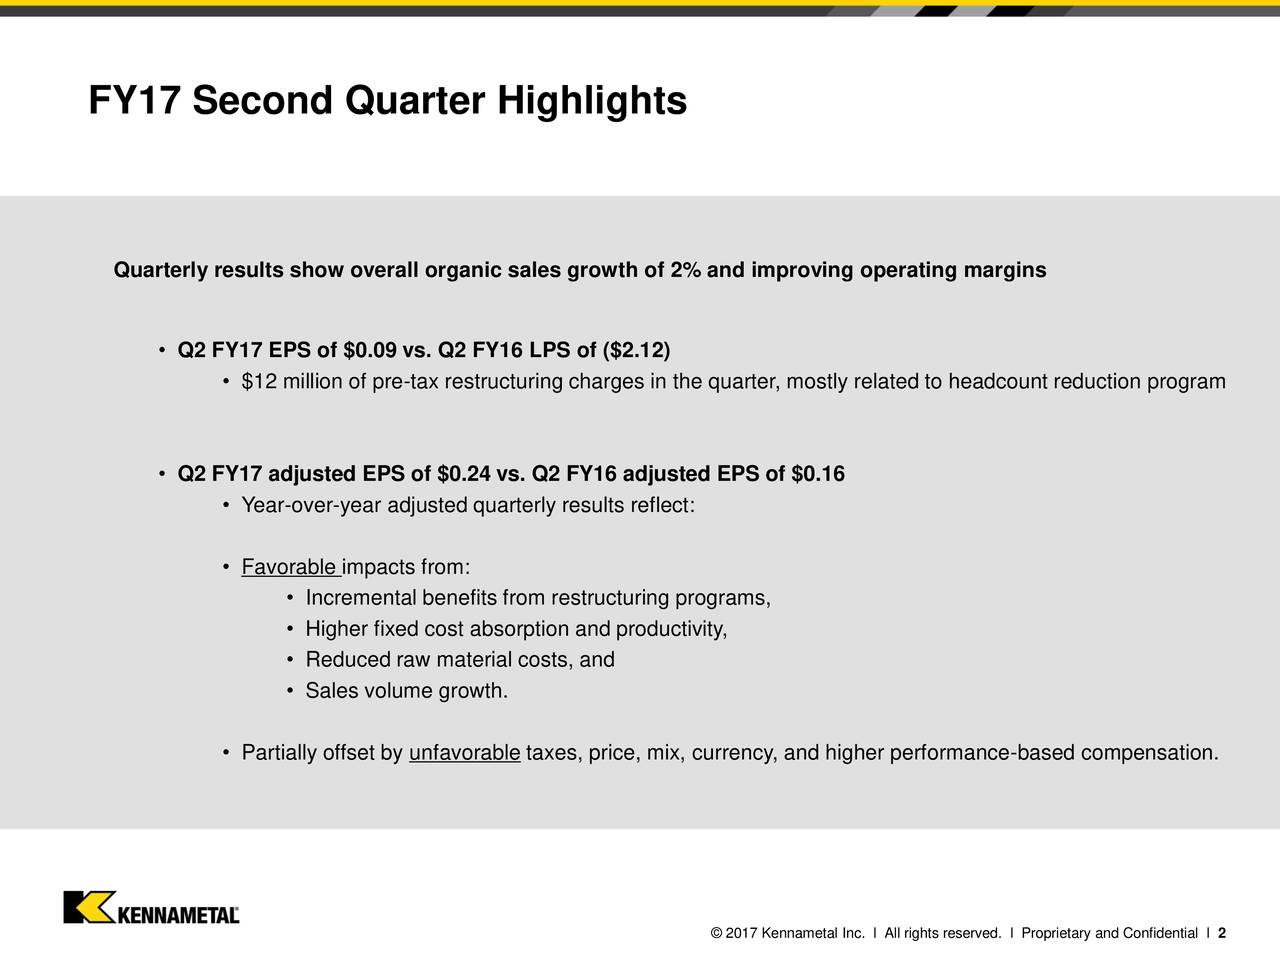 Quarterly results show overall organic sales growth of 2% and improving operating margins Q2 FY17 EPS of $0.09 vs. Q2 FY16 LPS of ($2.12) $12 million of pre-tax restructuring charges in the quarter, mostly related to headcount reduction program Q2 FY17 adjusted EPS of $0.24 vs. Q2 FY16 adjusted EPS of $0.16 Year-over-year adjusted quarterly results reflect: Favorable impacts from: Incremental benefits from restructuring programs, Higher fixed cost absorption and productivity, Reduced raw material costs, and Sales volume growth. Partially offset by unfavorable taxes, price, mix, currency, and higher performance-based compensation. 2017 Kennametal Inc. l All rights reserved. l Proprietary and Confidential l 2